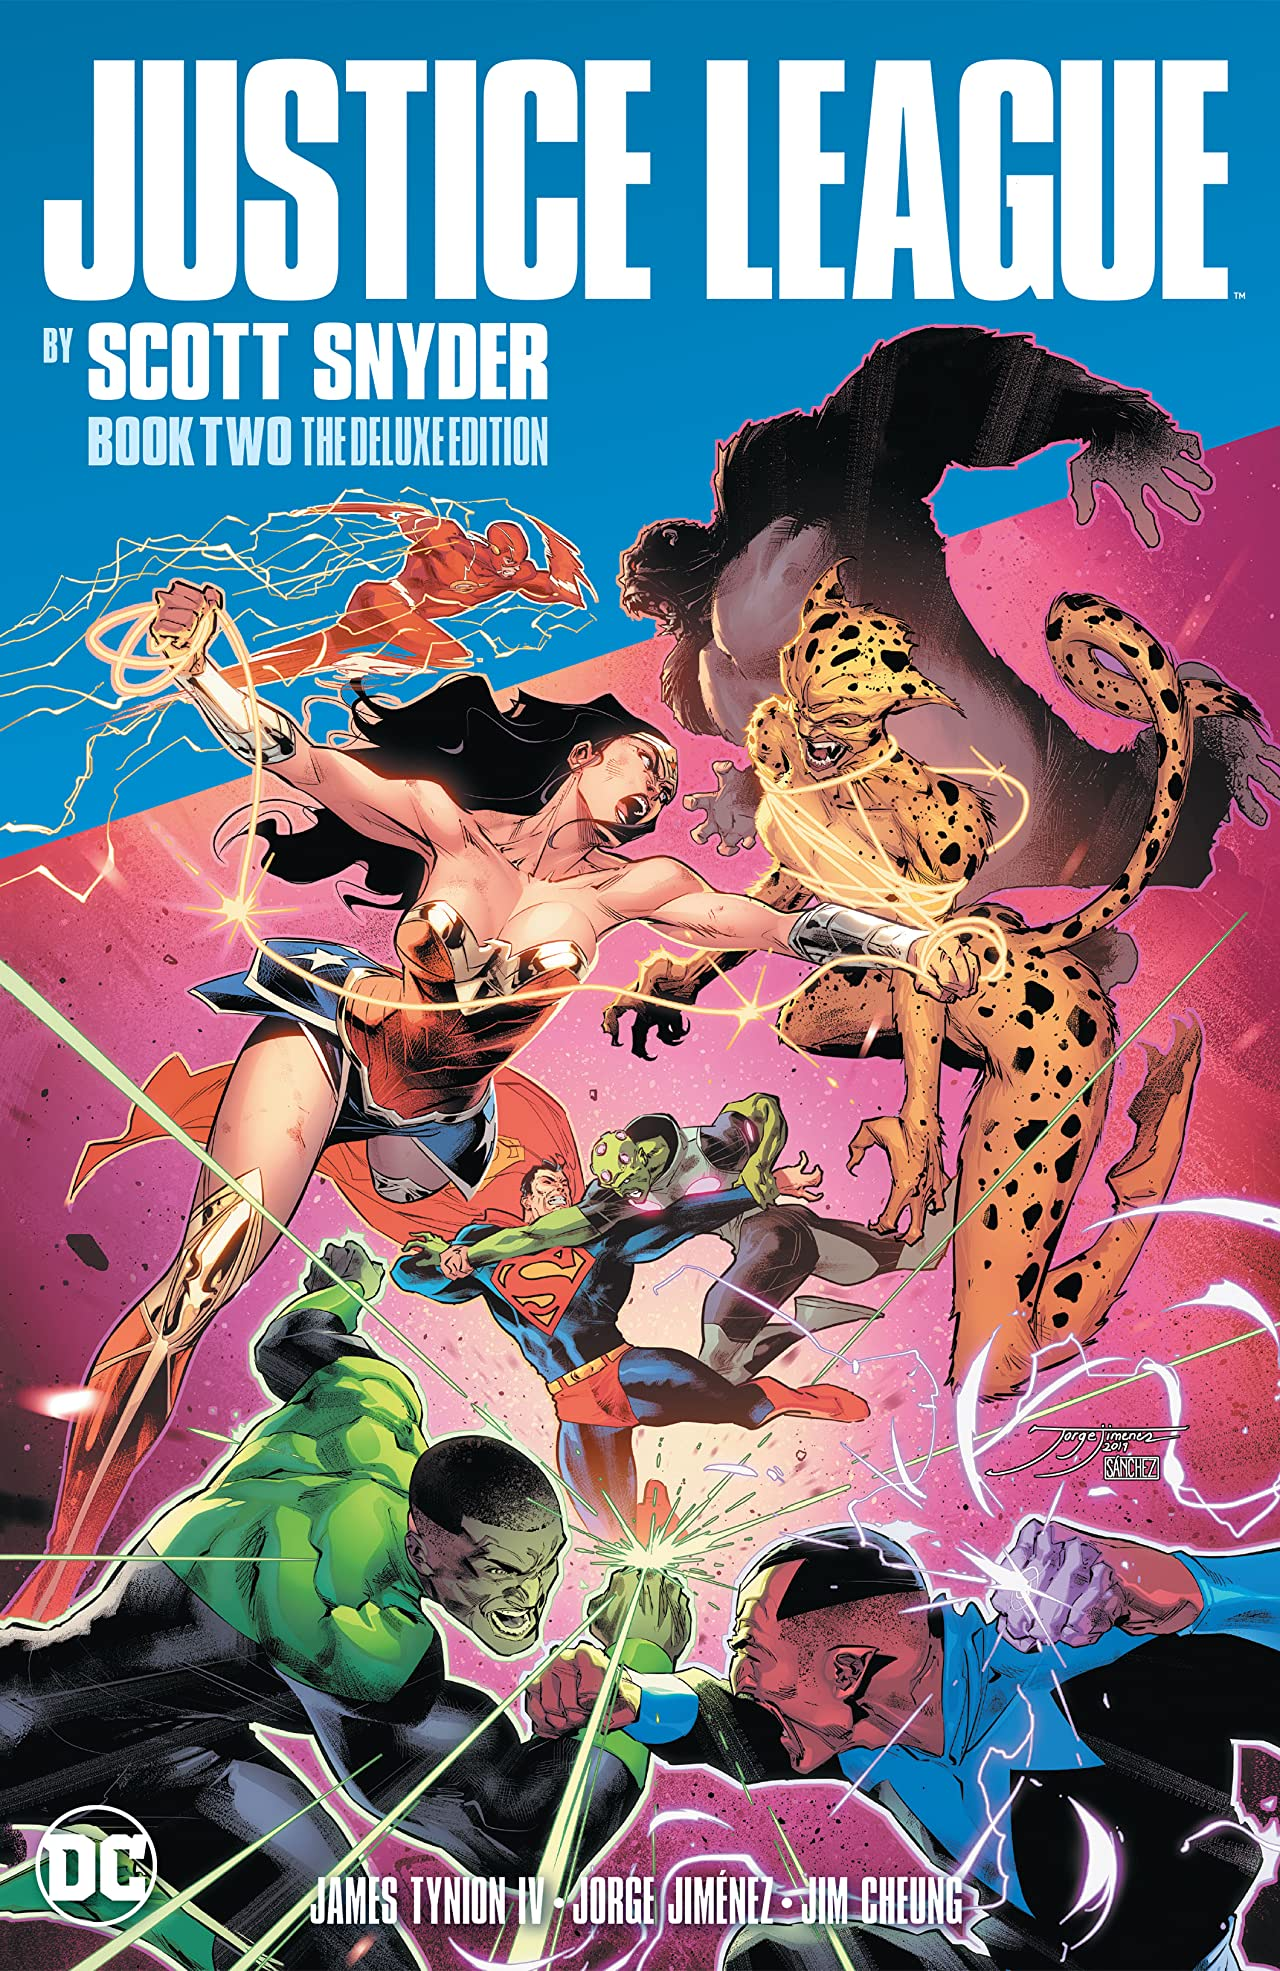 Justice League by Scott Snyder Book Two Deluxe Edition